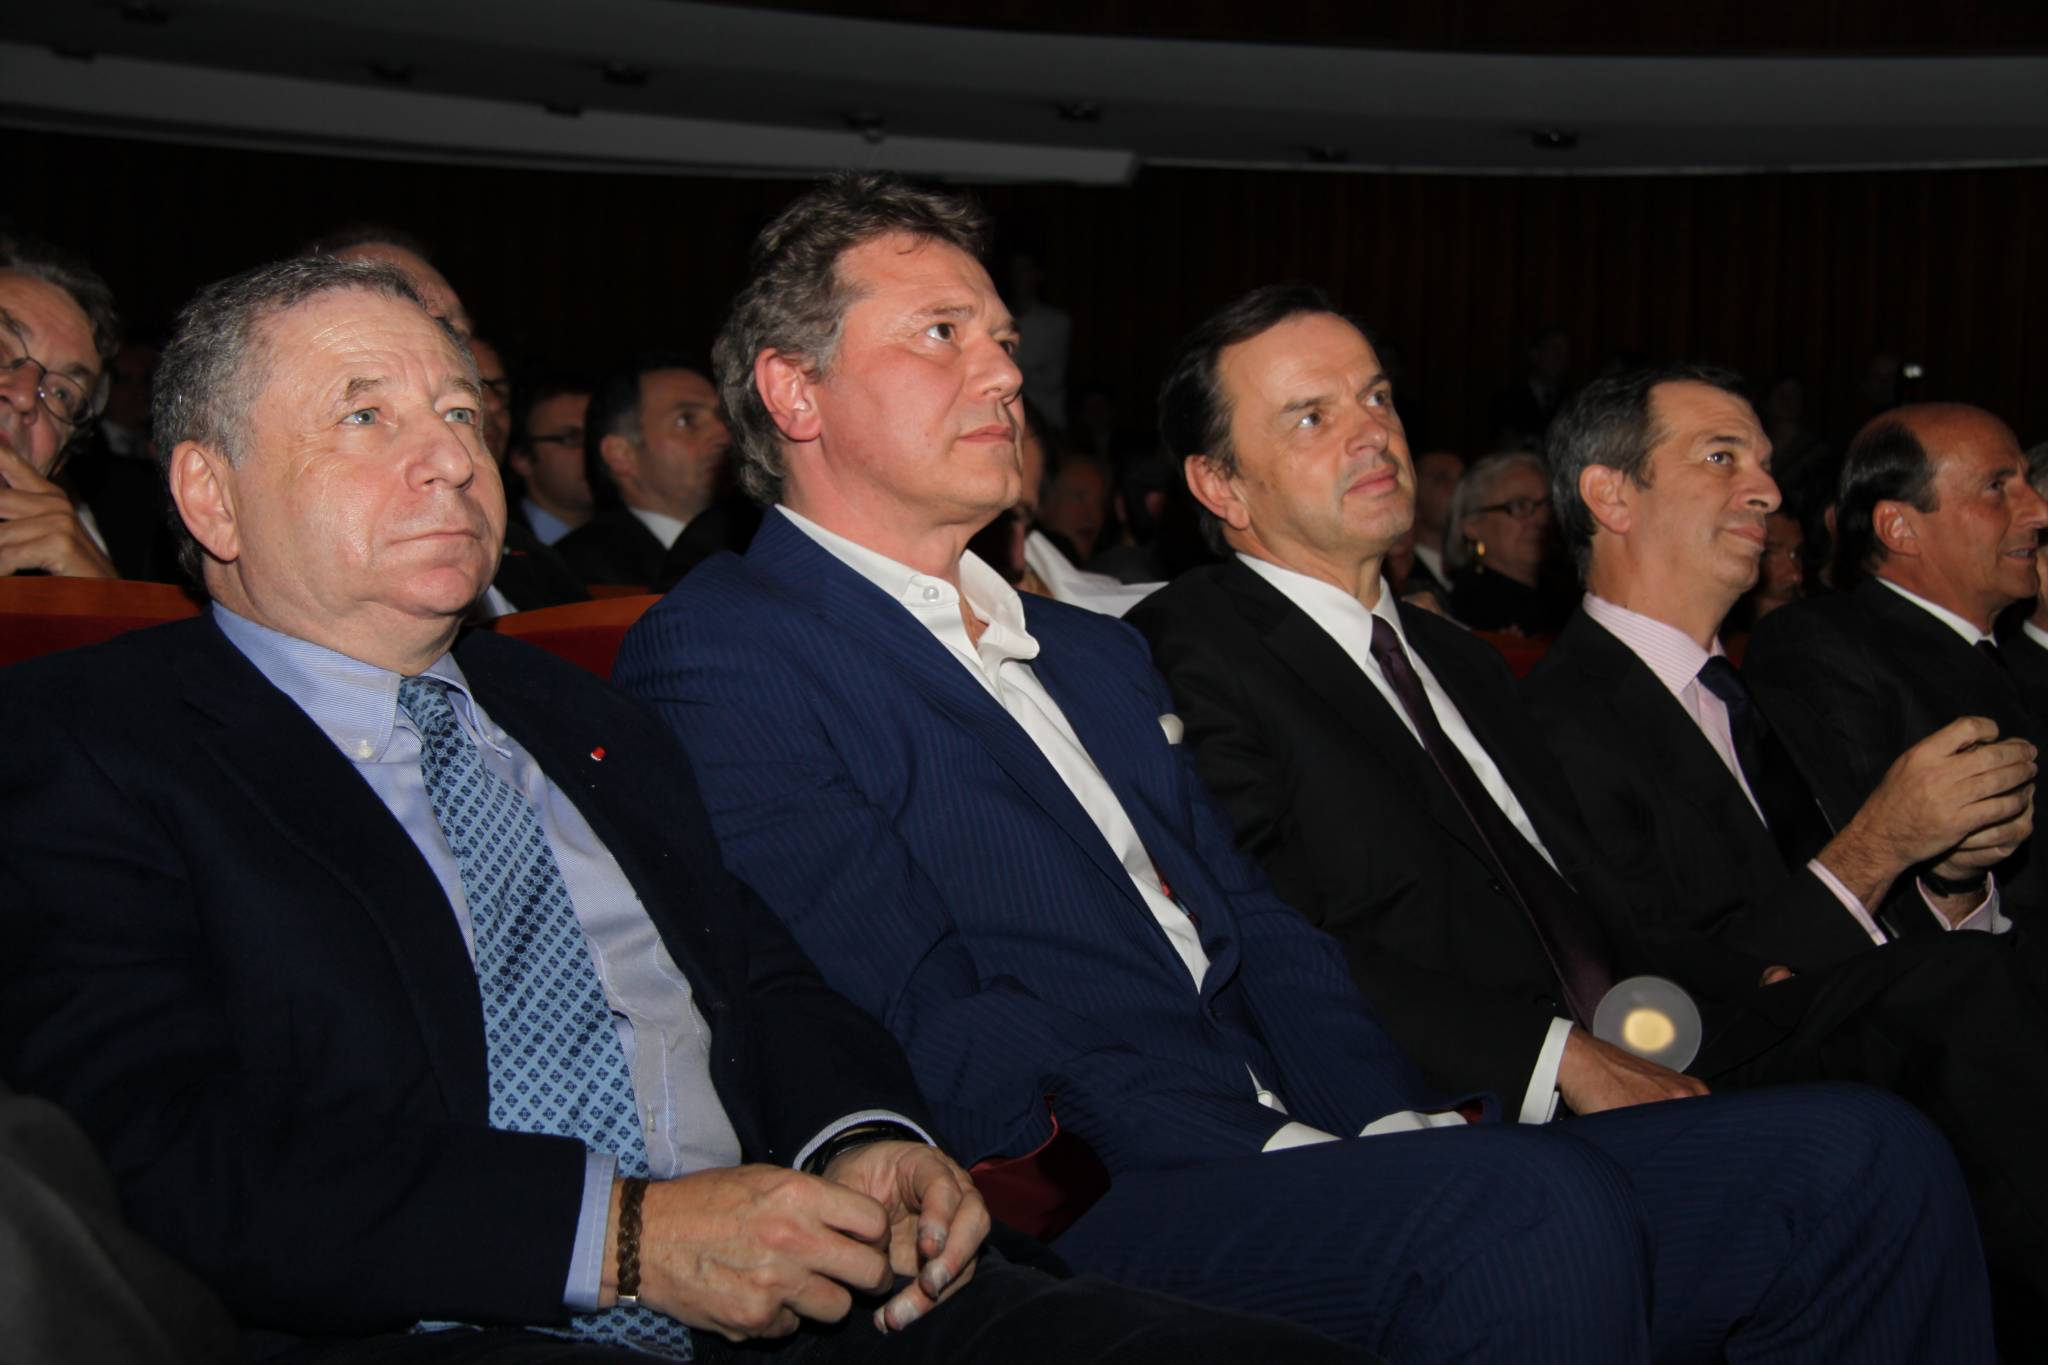 Jean Todt (President of FIA), François-Paul Journe (CEO of Montres Journe), Stanislas de Quercise (President and CEO, Van Cleef and Arpels), Philippe Léopold-Metzger (CEO, Piaget), Richard Mille (CEO of Richard Mille), 2010 ceremony